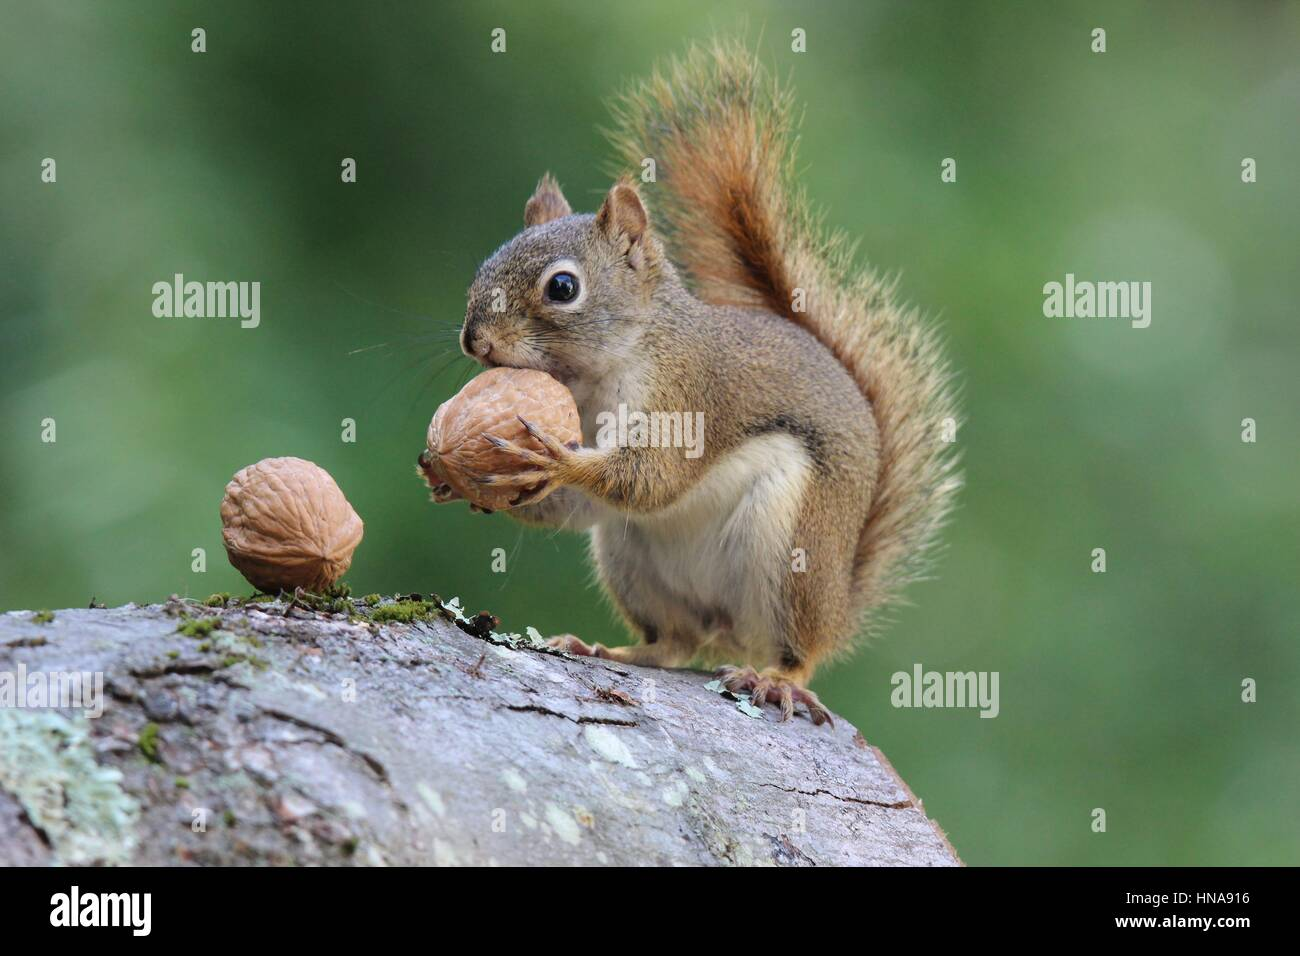 An American red squirrel finds a nut and carries it away to store for later - Stock Image